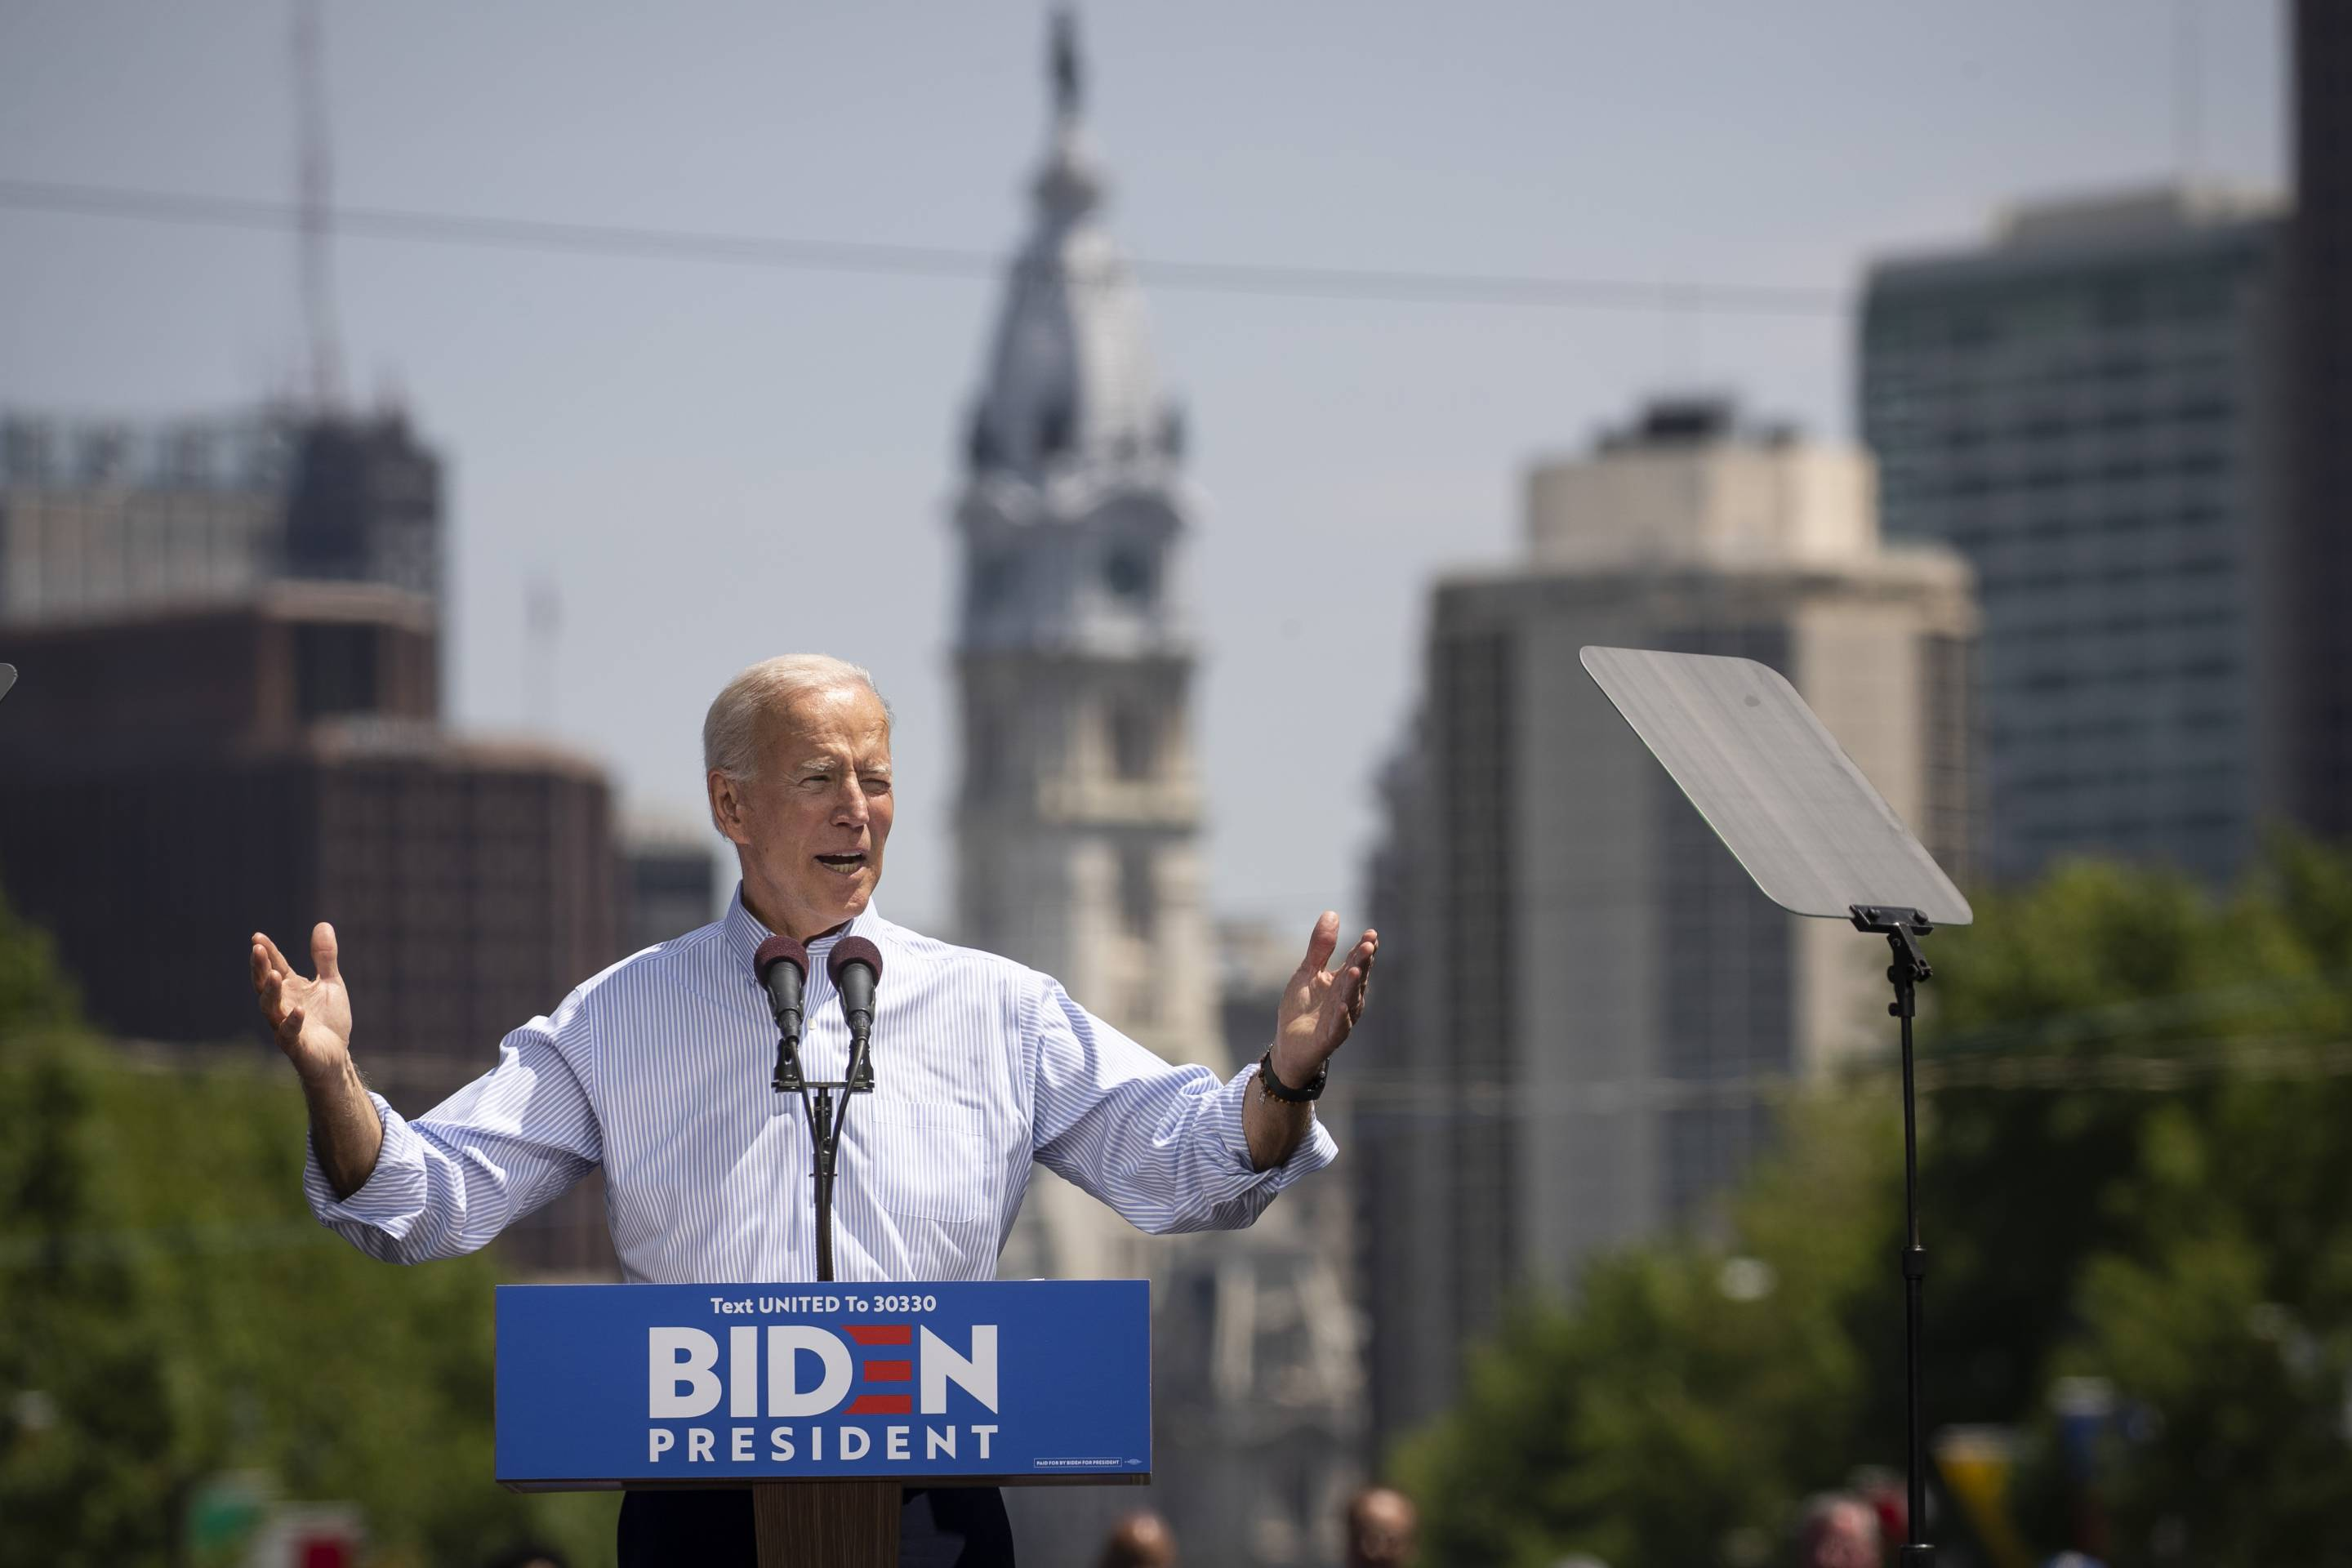 Former Vice President and Democratic presidential candidate Joe Biden speaks during a campaign kickoff rally on May 18, 2019, in Philadelphia.